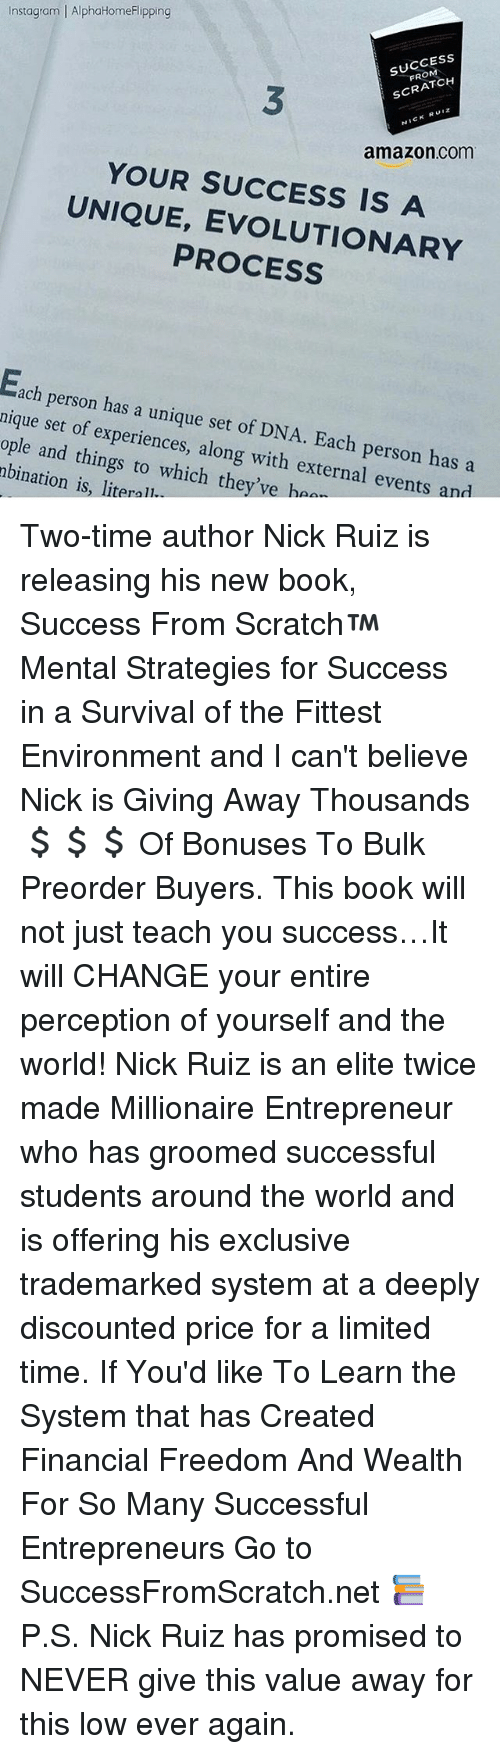 Amazon, Books, and Instagram: Instagram | AlphaHomeFlipping  SUCCESS  FROM  3  SCRATCH  NICK RUIZ  amazon.com  YOUR SUCCESS IS A  UNIQUE, EVOLUTIONARY  PROCESS  ach person has a unique set of DNA. Each person has a  nique set of experiences, along with external events and  ople and things to which they've haa  nbination is, literal Two-time author Nick Ruiz is releasing his new book, Success From Scratch™ Mental Strategies for Success in a Survival of the Fittest Environment and I can't believe Nick is Giving Away Thousands 💲💲💲 Of Bonuses To Bulk Preorder Buyers. This book will not just teach you success…It will CHANGE your entire perception of yourself and the world! Nick Ruiz is an elite twice made Millionaire Entrepreneur who has groomed successful students around the world and is offering his exclusive trademarked system at a deeply discounted price for a limited time. If You'd like To Learn the System that has Created Financial Freedom And Wealth For So Many Successful Entrepreneurs Go to SuccessFromScratch.net 📚 P.S. Nick Ruiz has promised to NEVER give this value away for this low ever again.